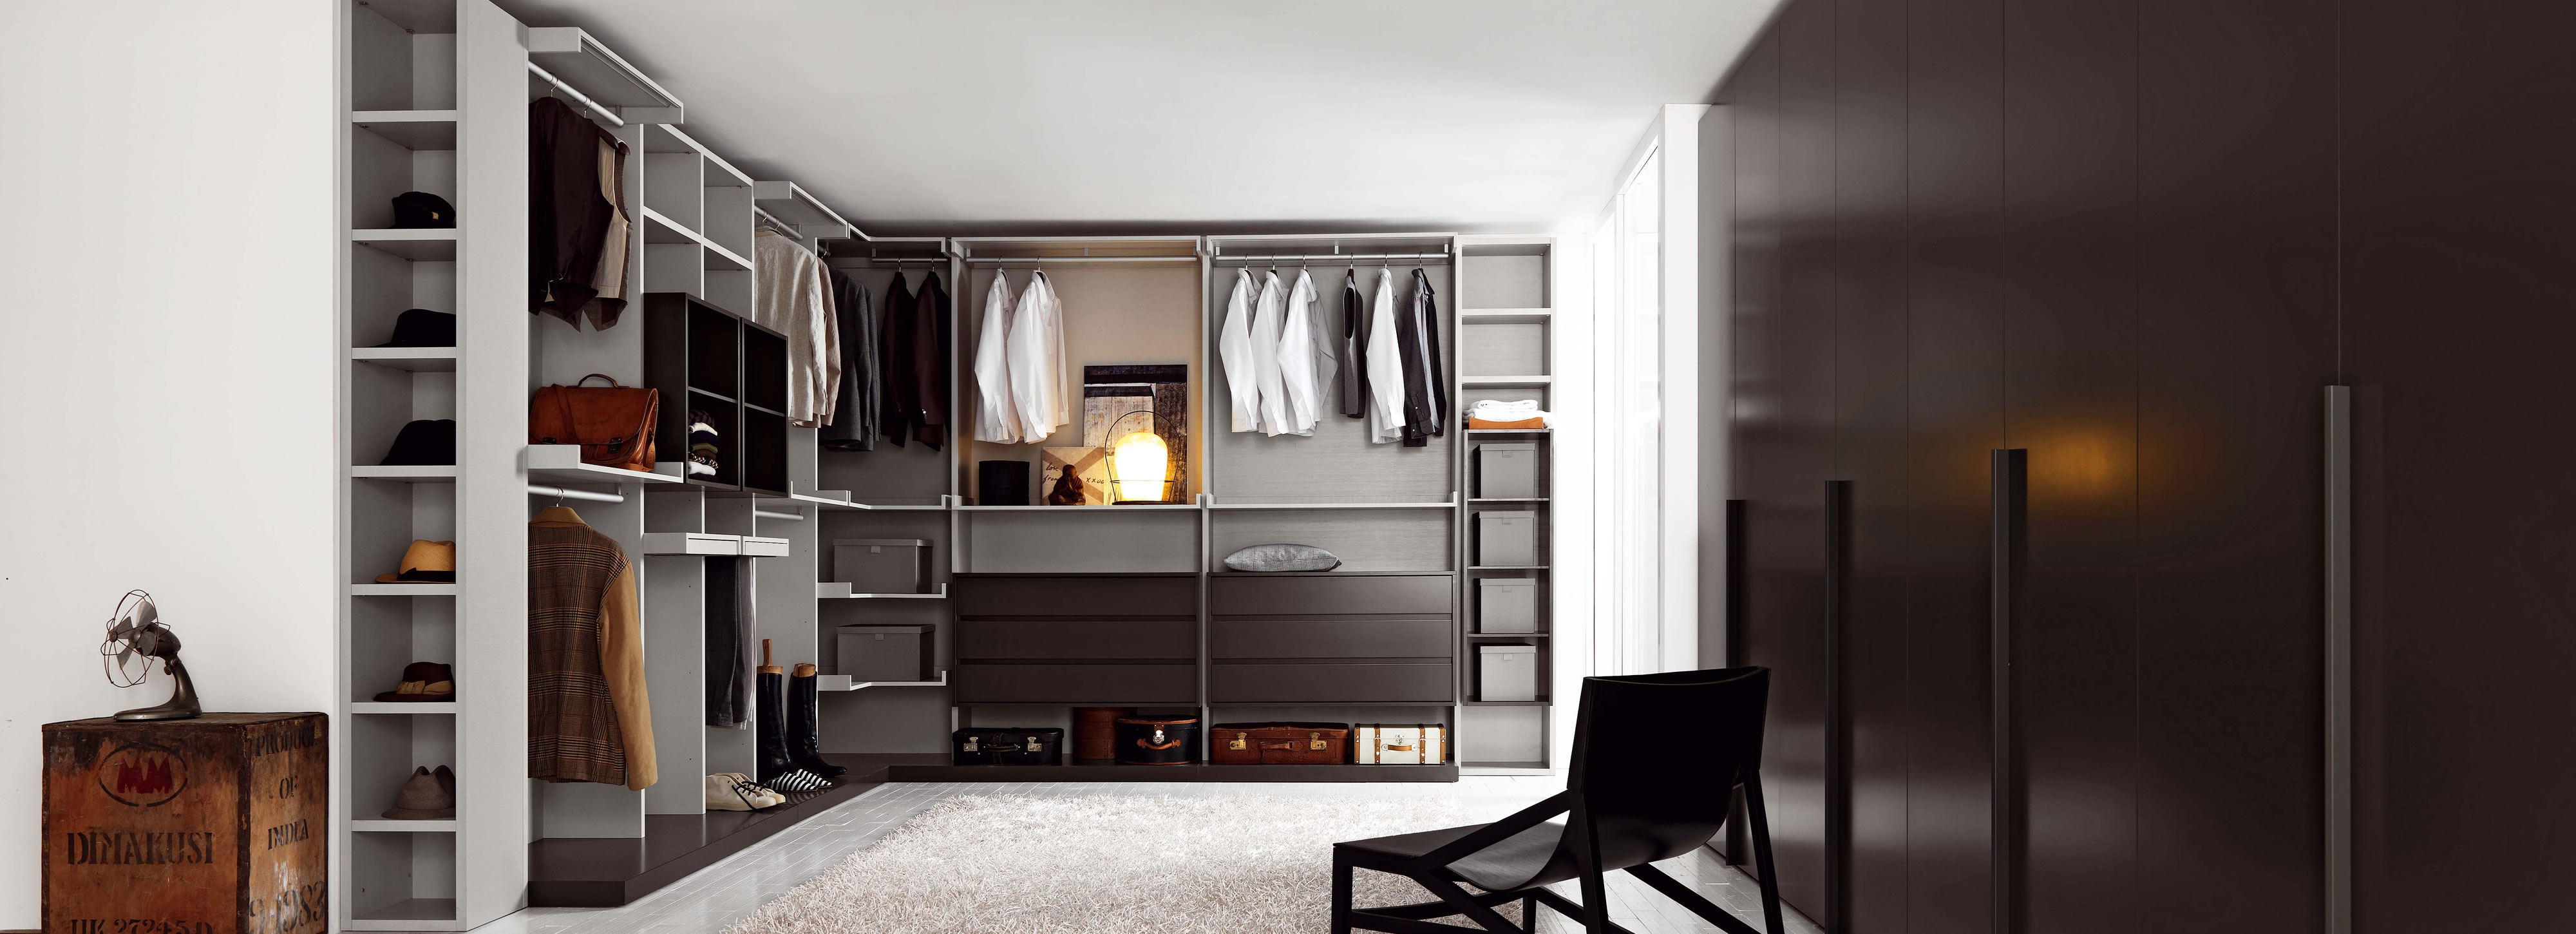 Walk-in Wardrobe - Tempo Cabine